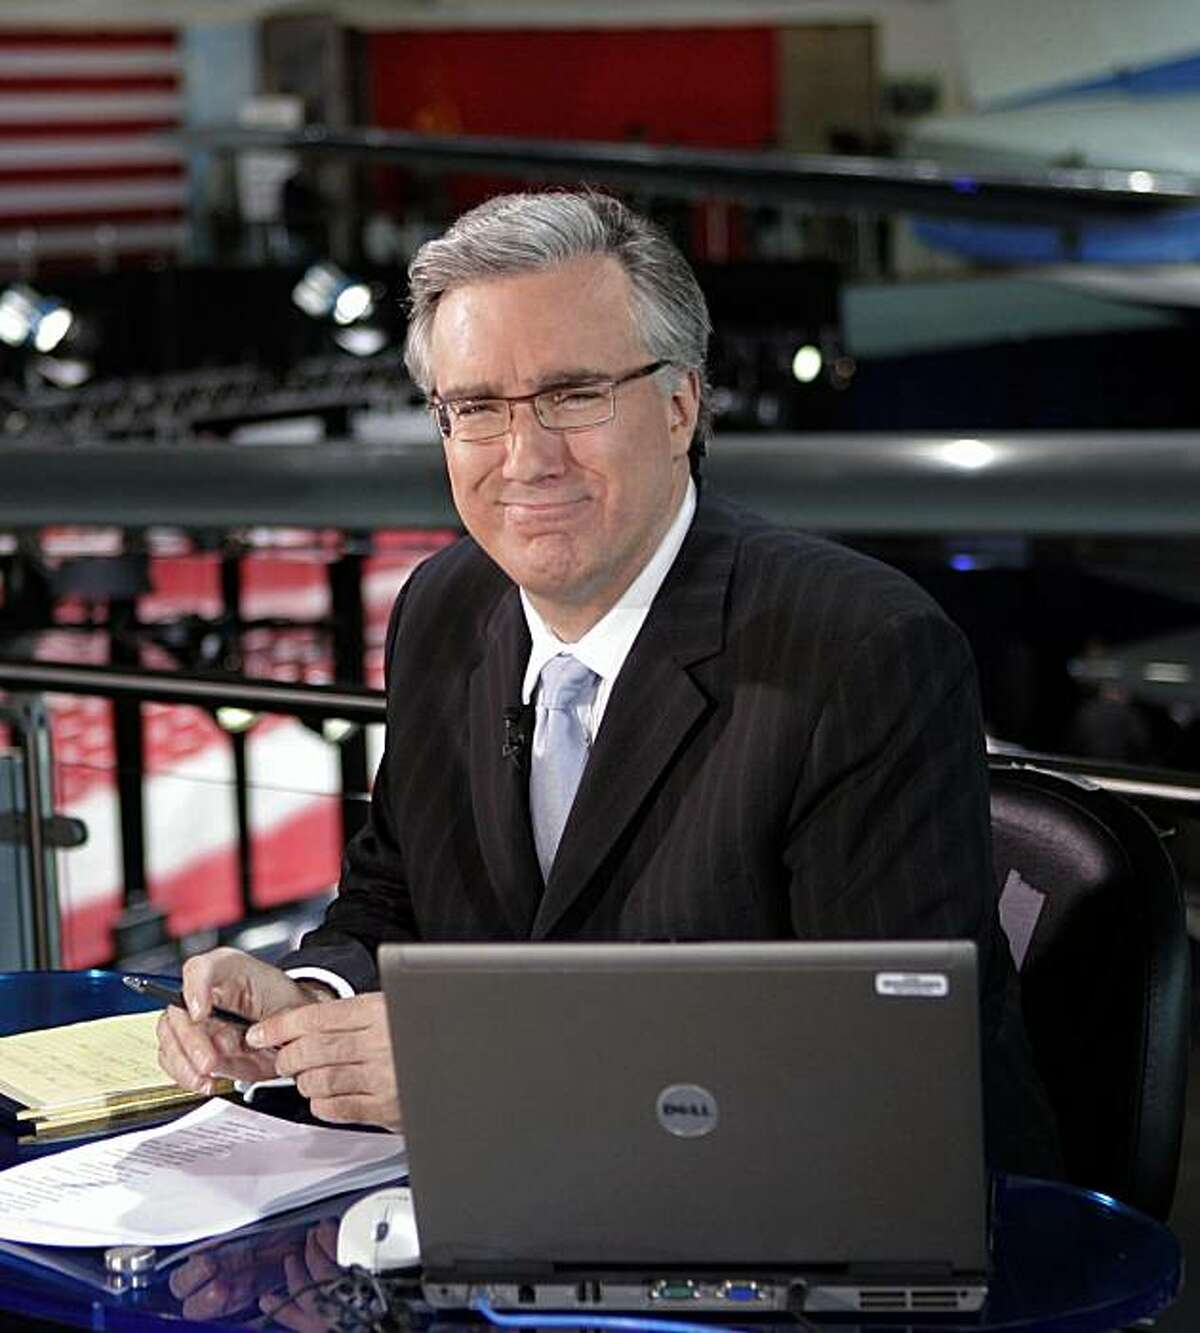 """FILE - In this May 3, 2007 file photo, Keith Olbermann of MSNBC poses at the Ronald Reagan Library in Simi Valley, Calif. Keith Olbermann is leaving MSNBC and has announced that Friday's """"Countdown"""" show will be his last. MSNBC issued a statement Friday,Jan. 21, 2011, that it had ended its contract with the controversial host, with no further explanation."""